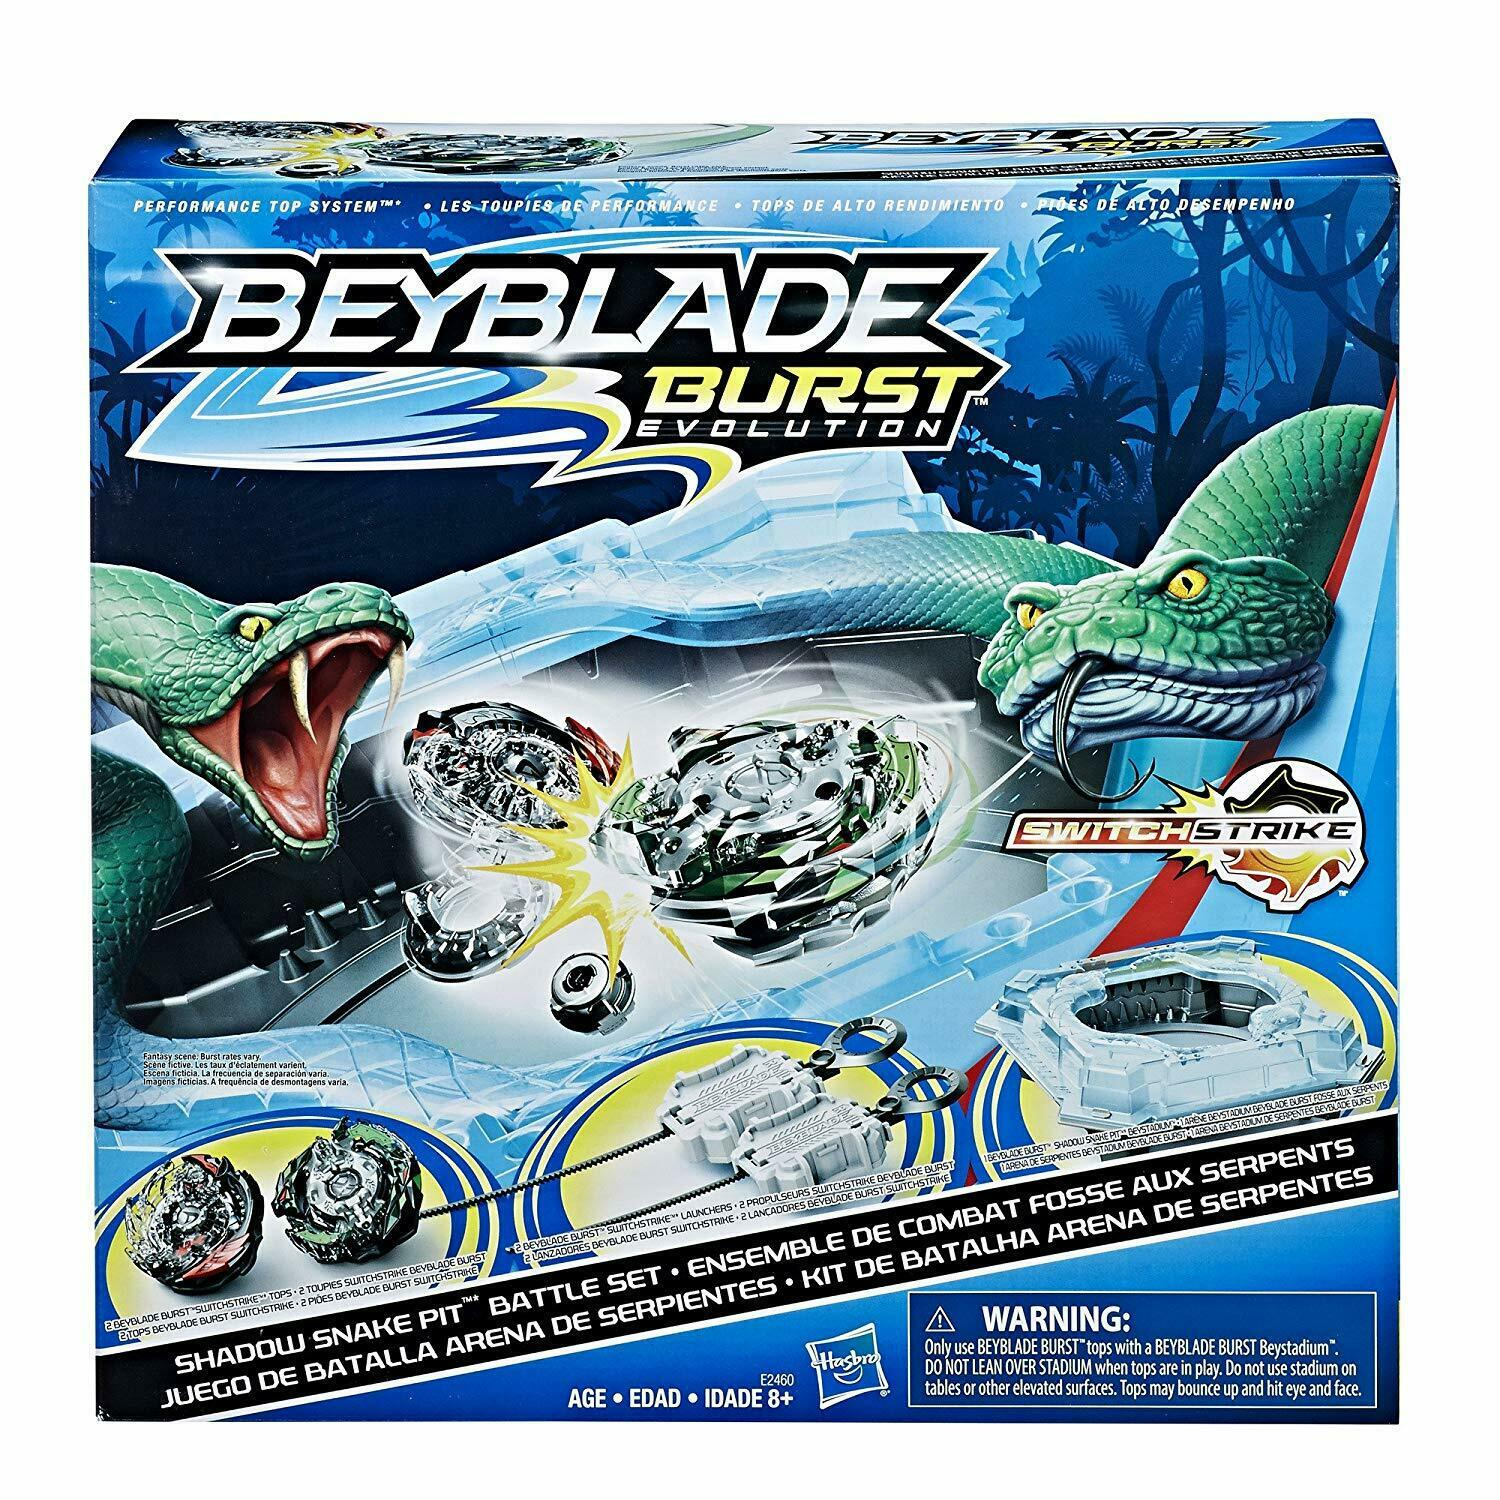 Beyblade Burst Switch Strike Shadow Snake Pit Battle Set Hasbro E2460